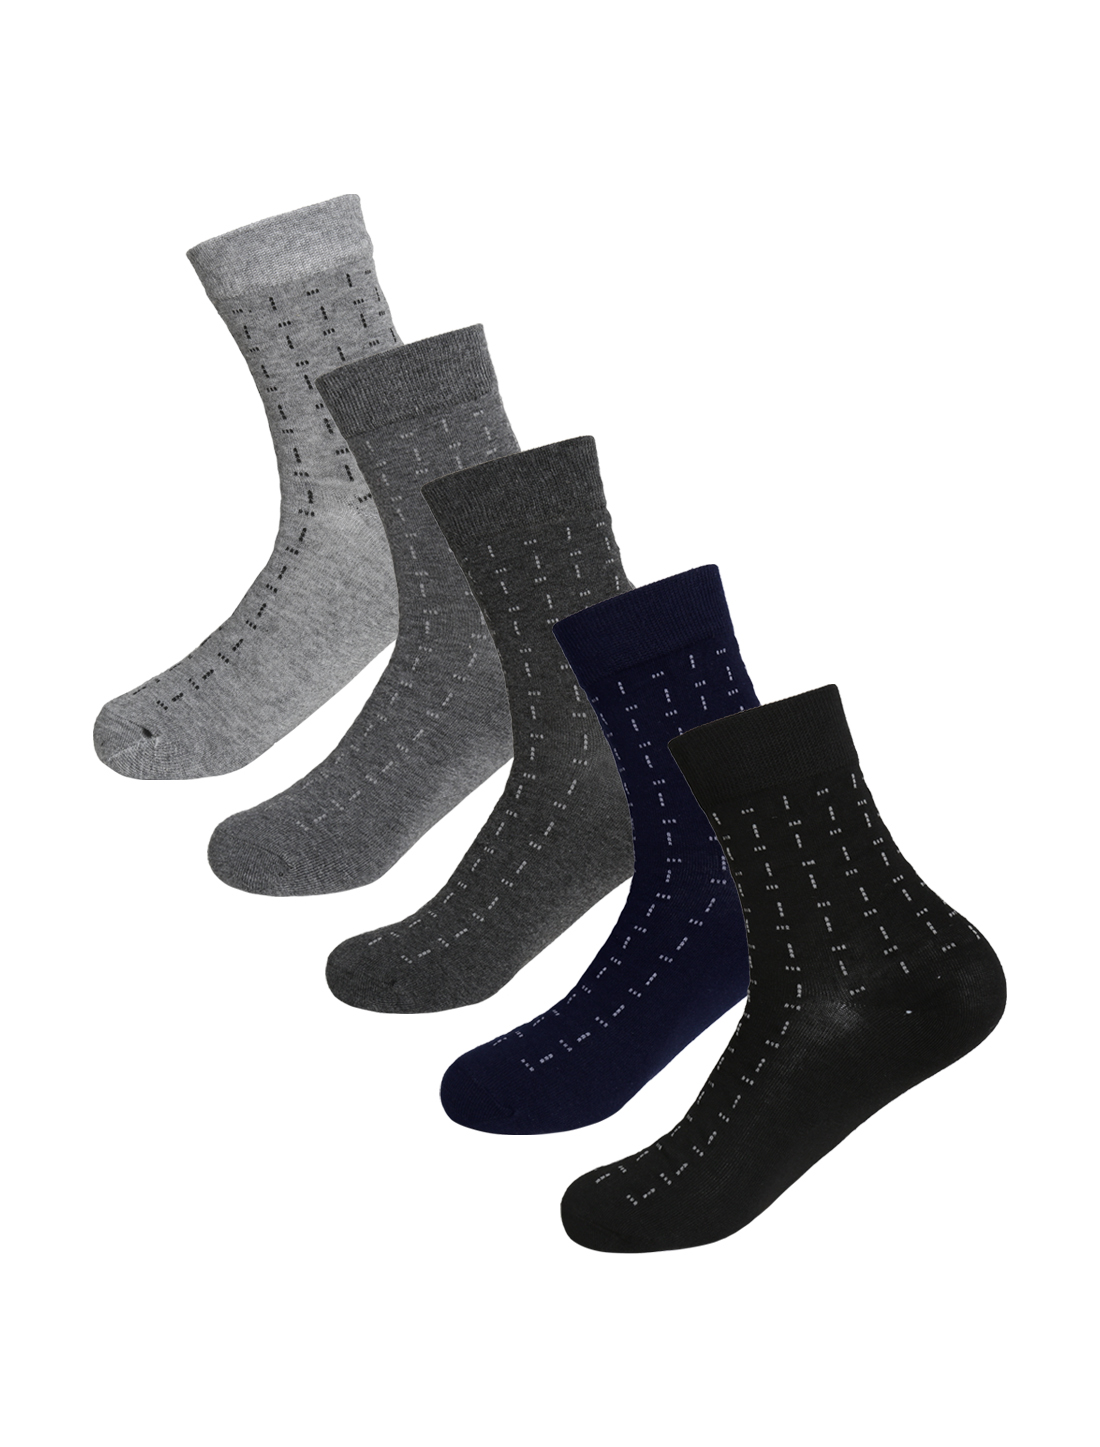 Men Dots Prints Warm Thermal Crew Socks 5 Pack 10-12 Assorted-Dots